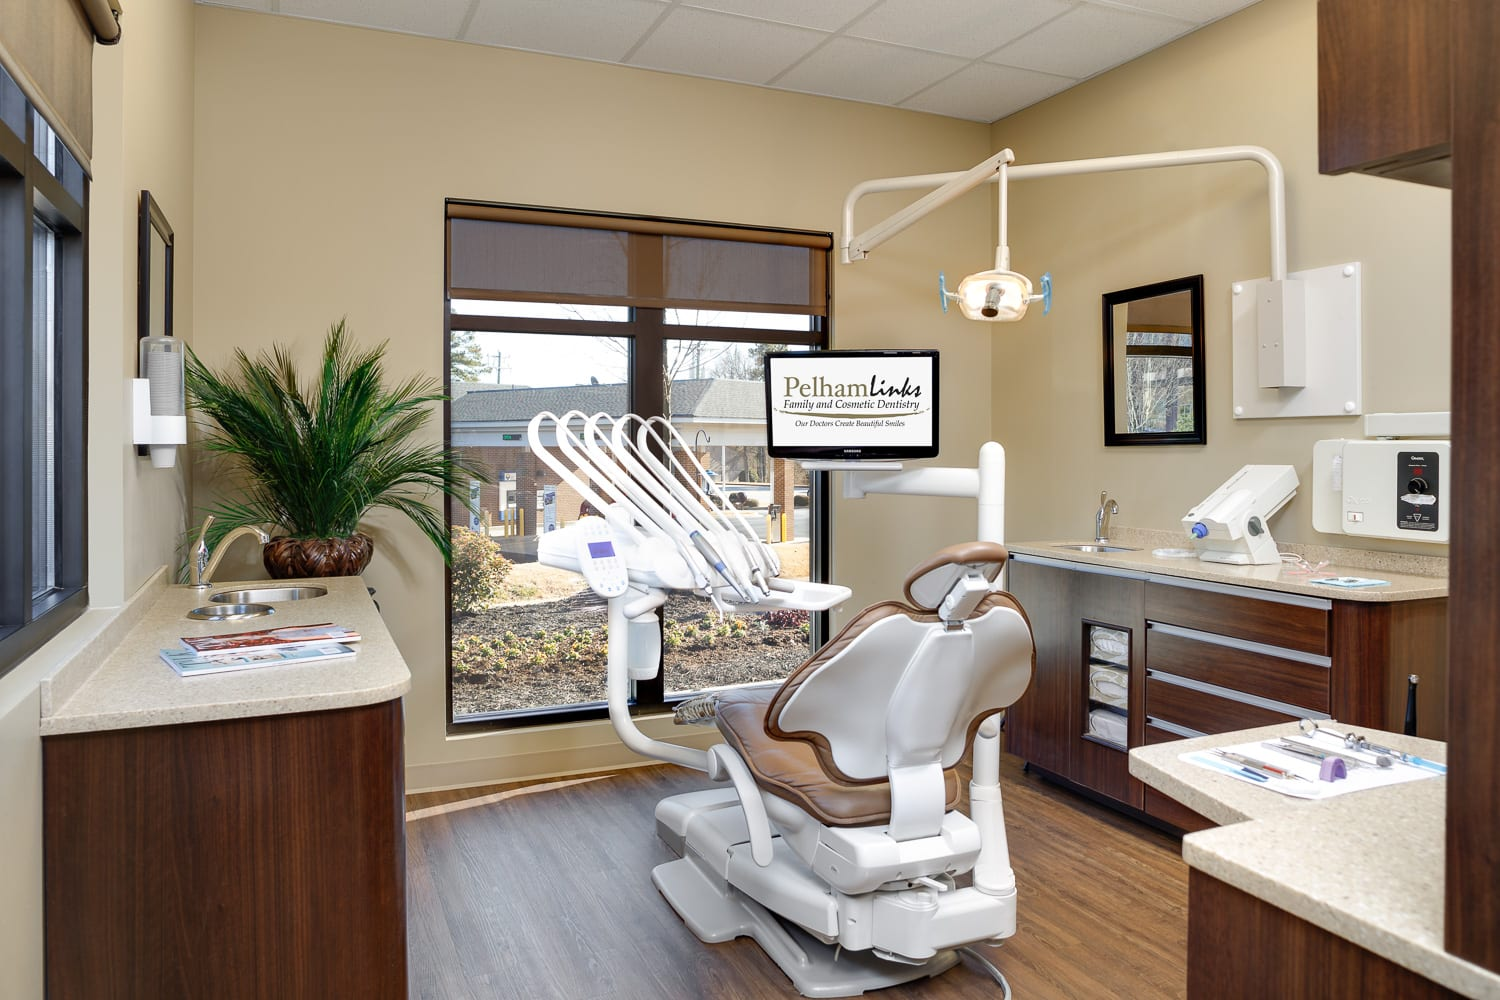 Picture of the office area of Pelham Links Family Dentistry.